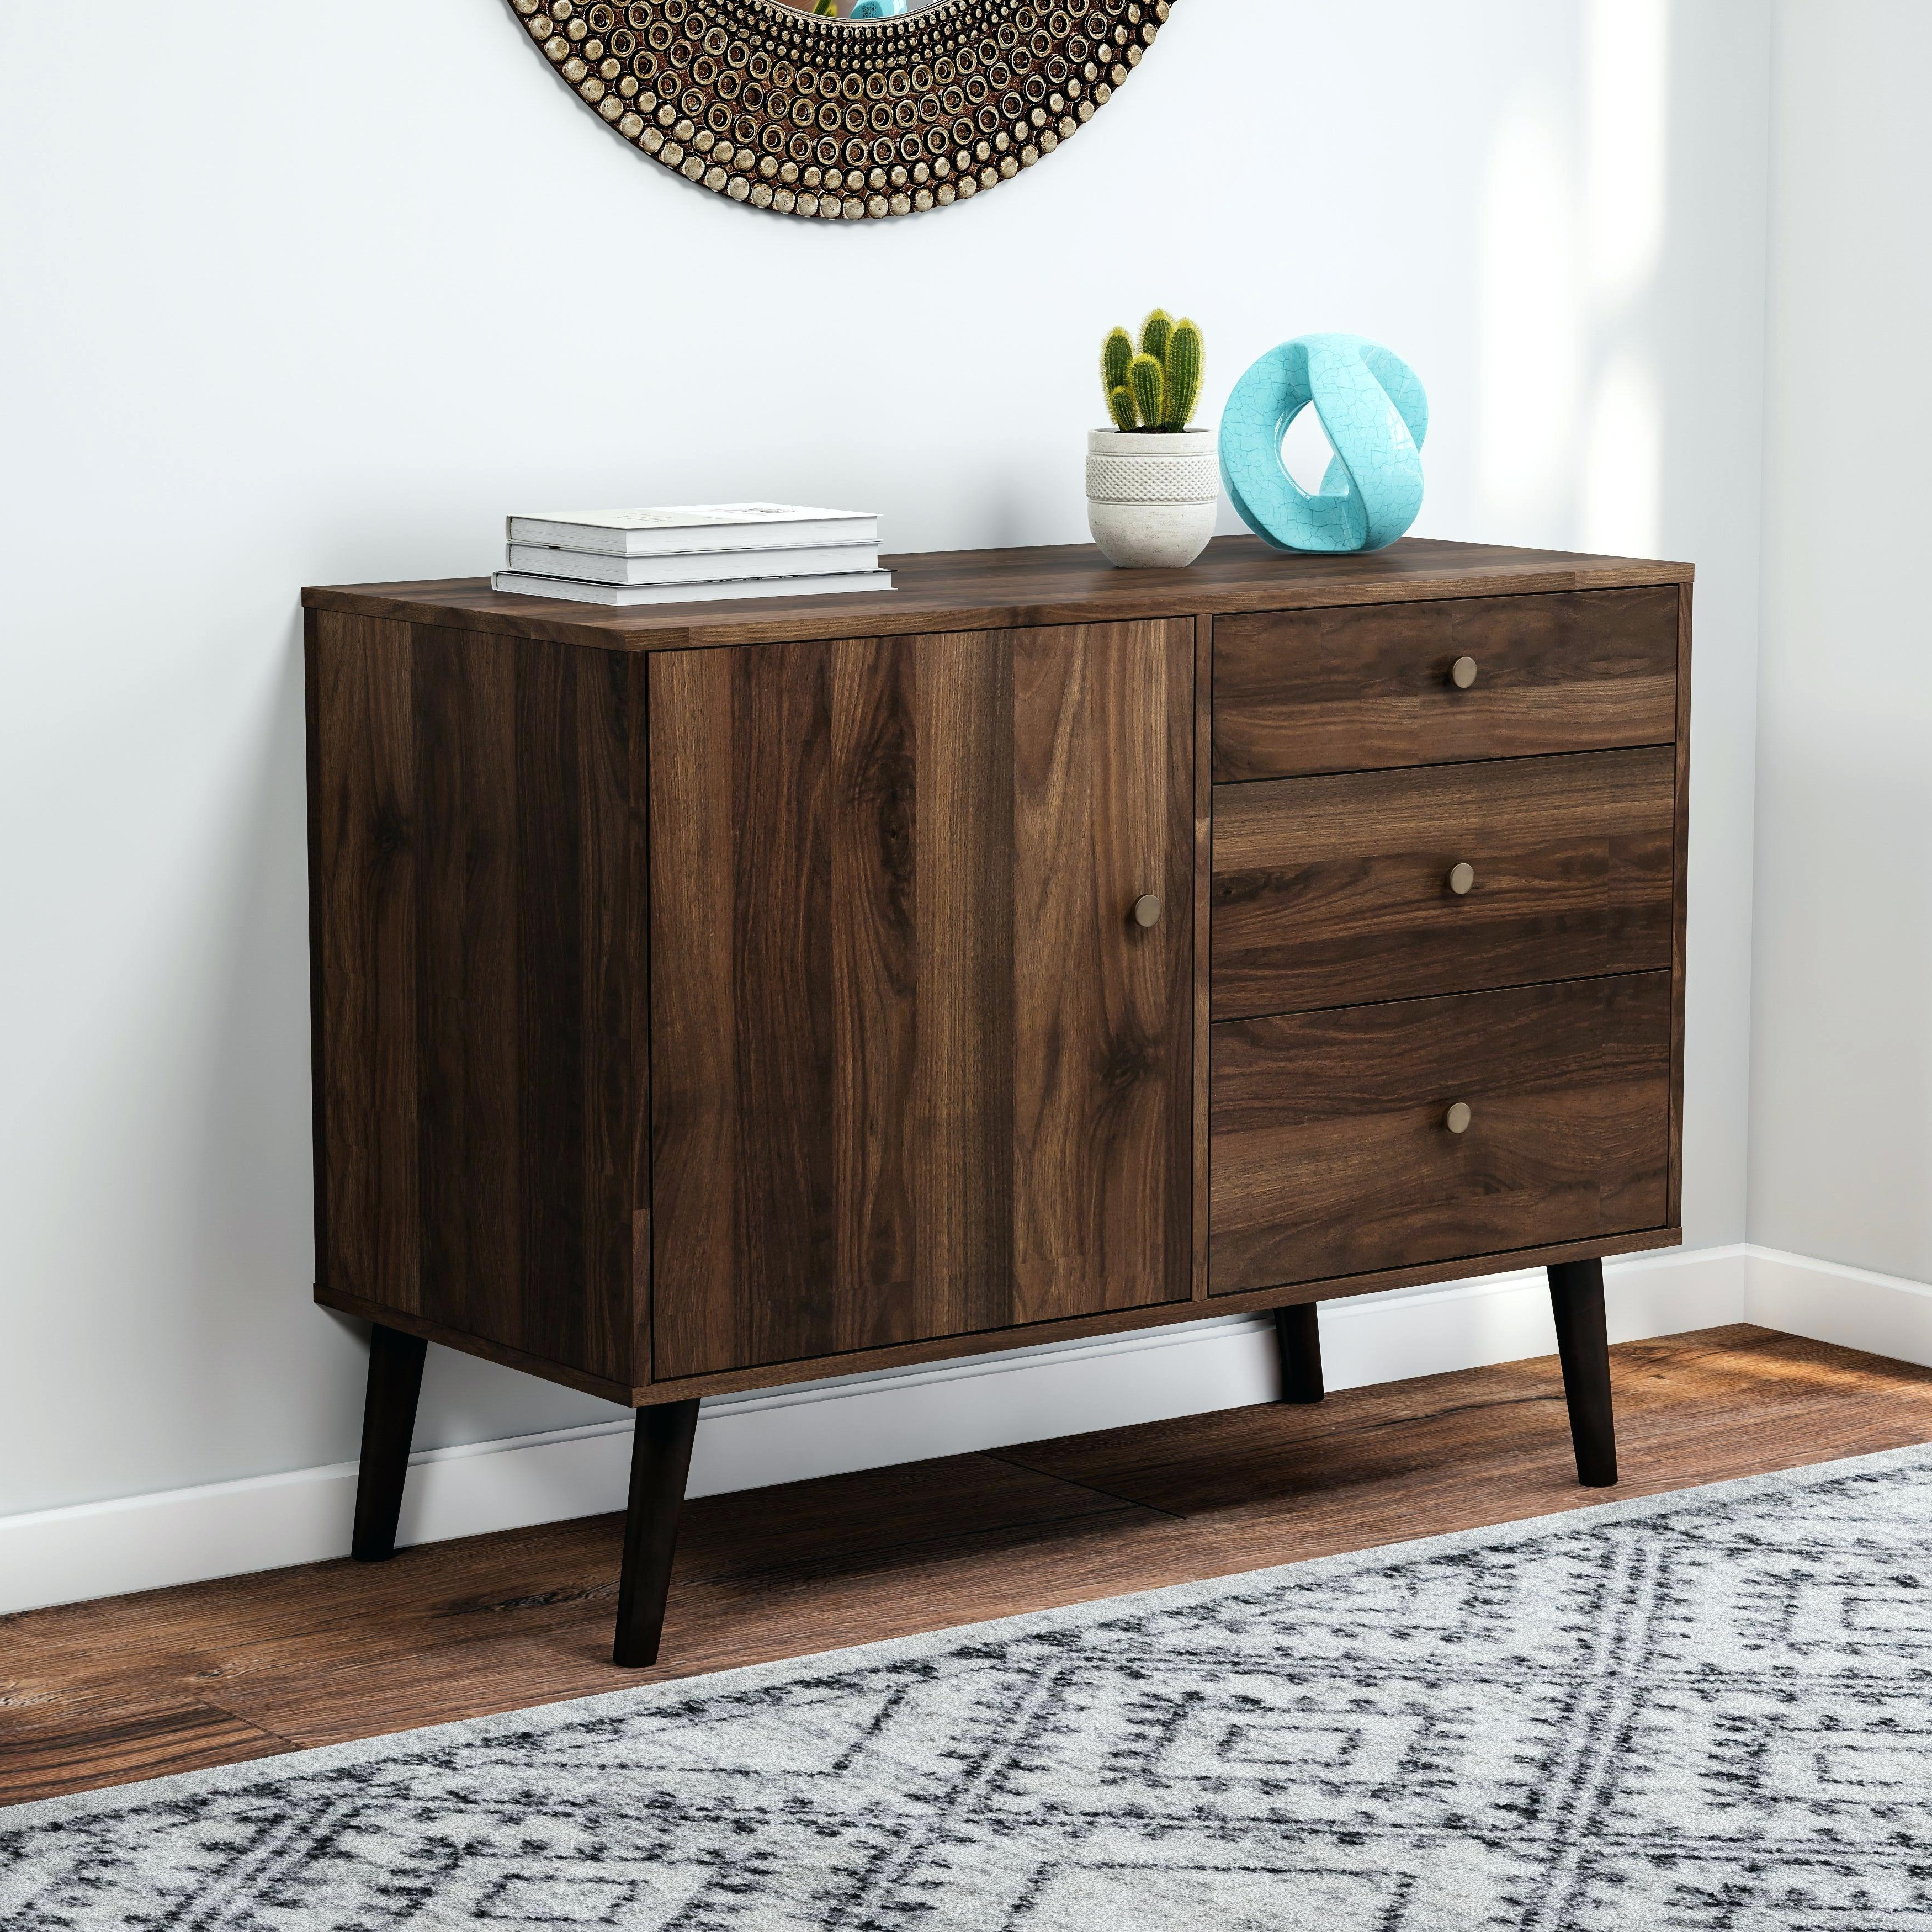 Mid Century Buffet Furniture Sideboard Credenza Table Throughout Mid Century Brown Sideboards (View 11 of 20)